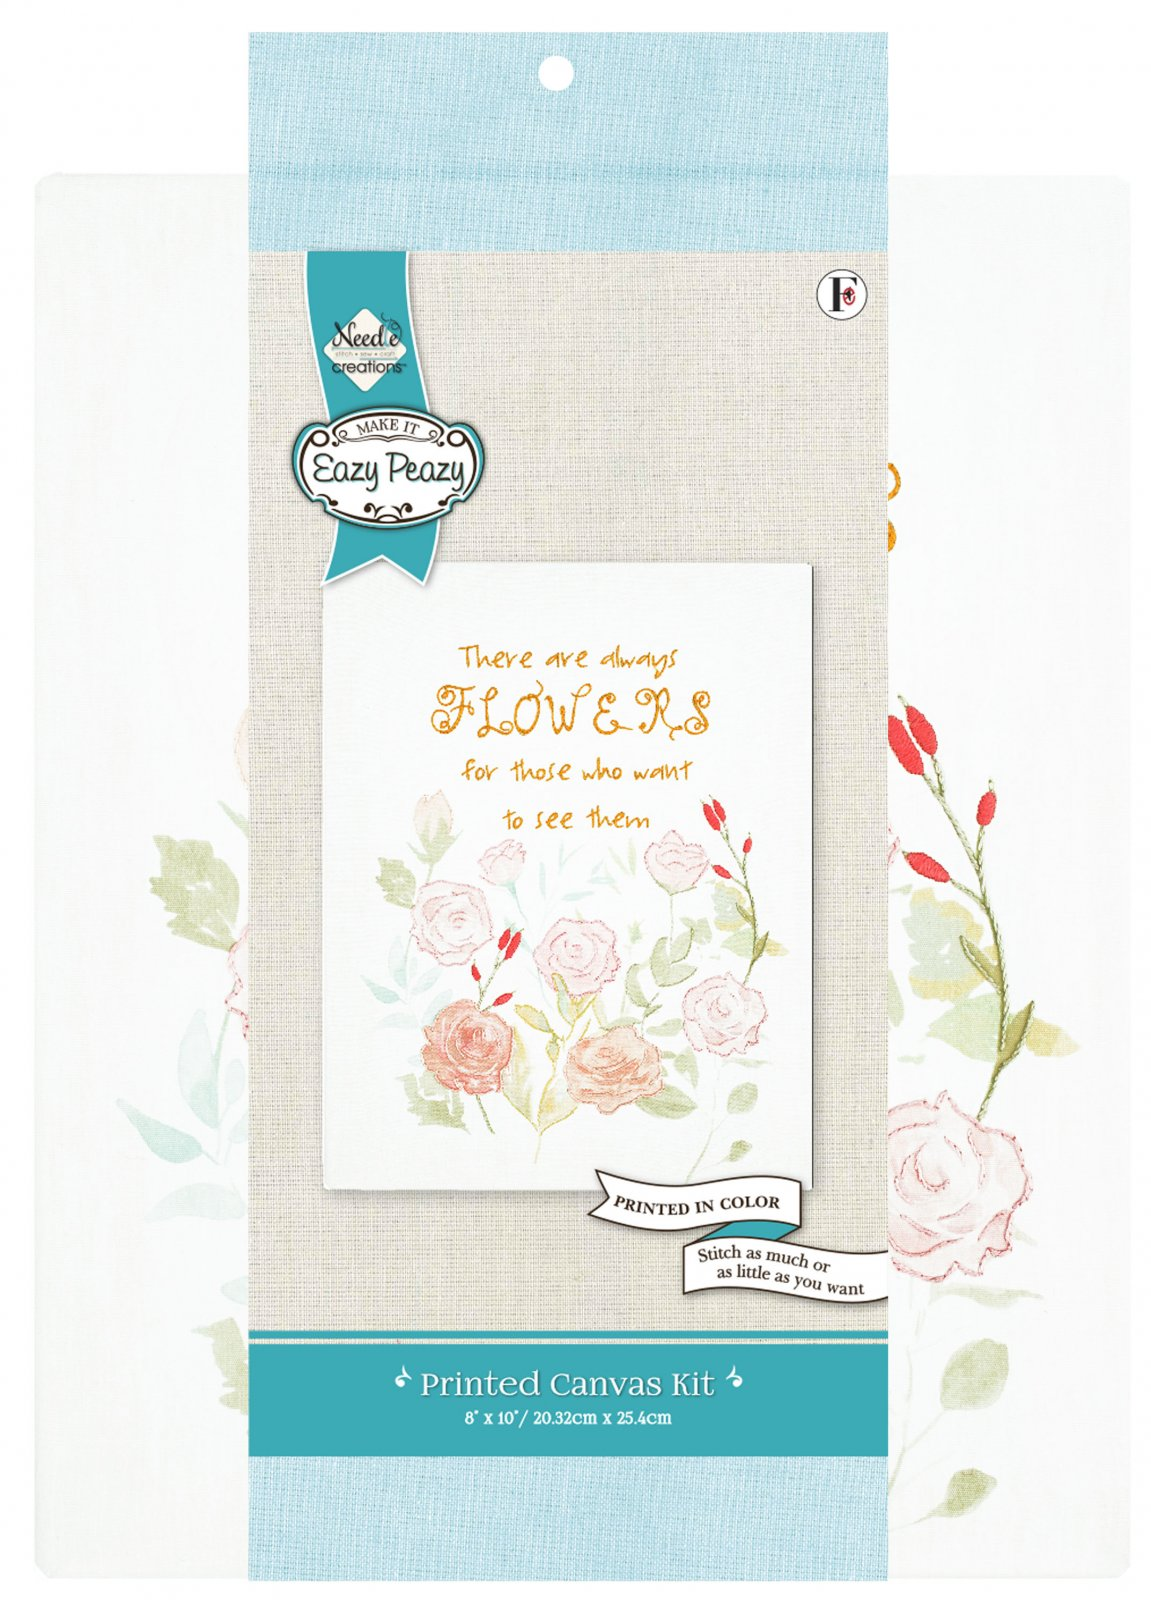 Eazy Peazy<br>Embroidery Canvas Kit<br>NC-EP-TRND-17